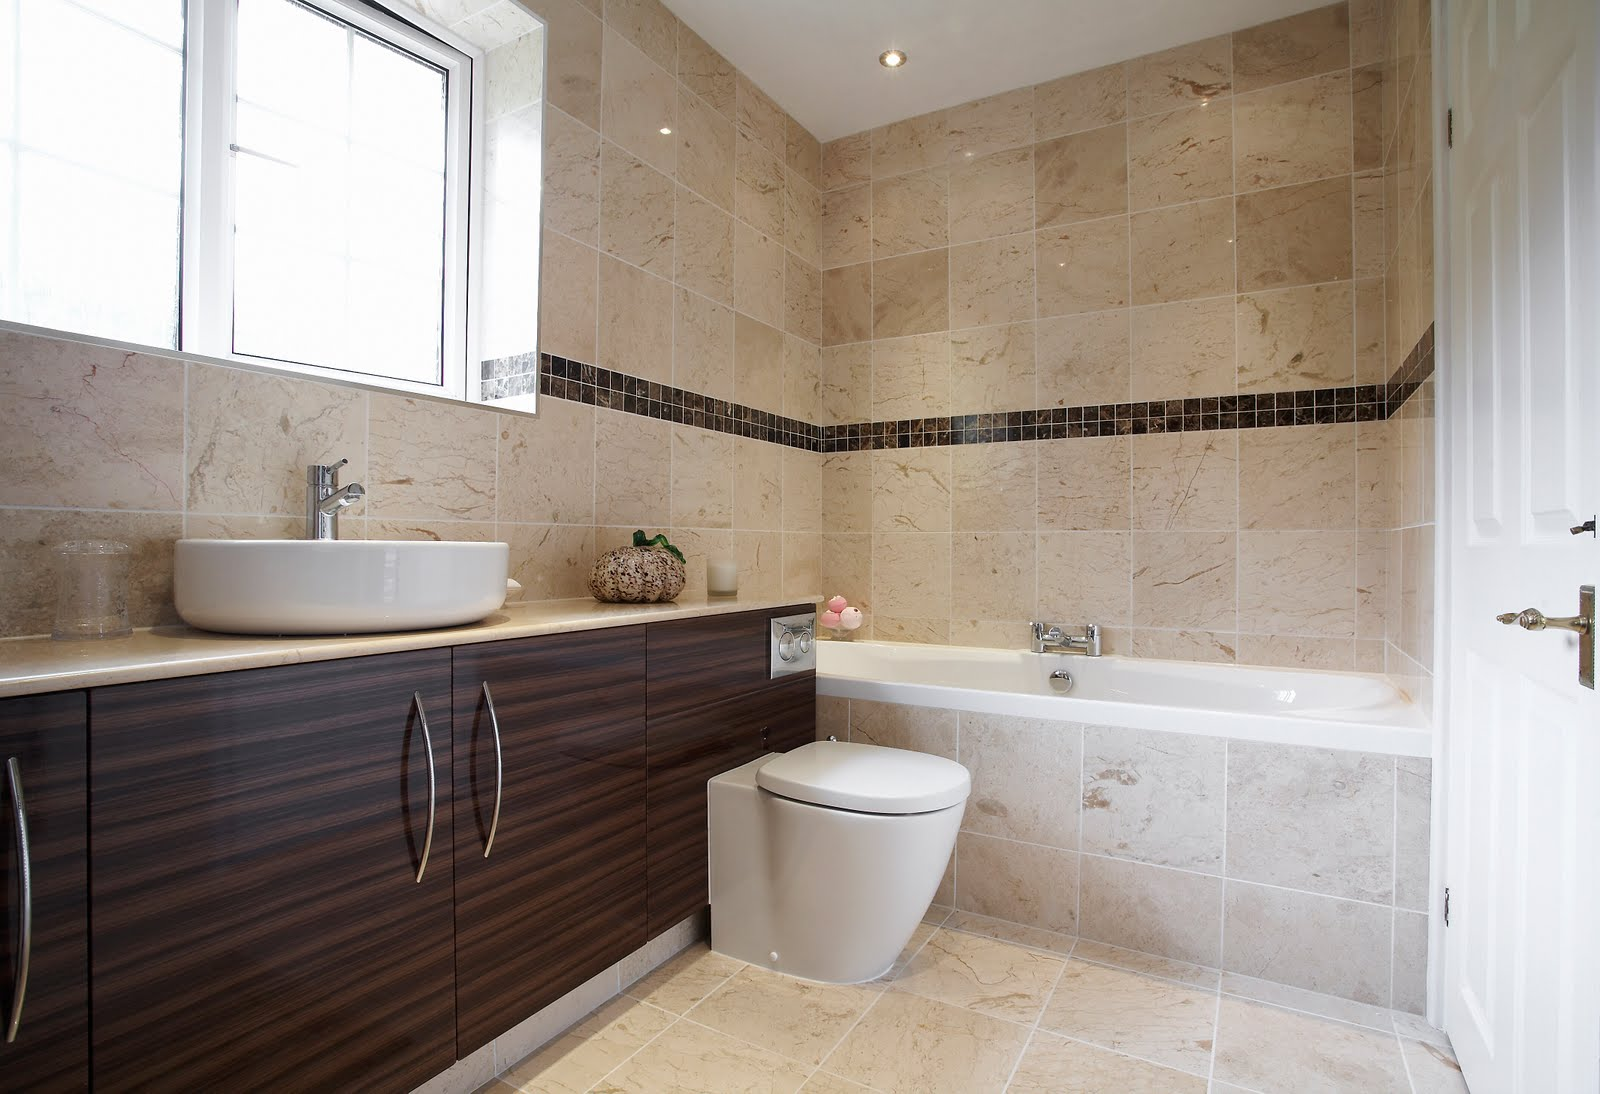 Cymru kitchens ltd cymru kitchens bathrooms for Bathtub ideas pictures